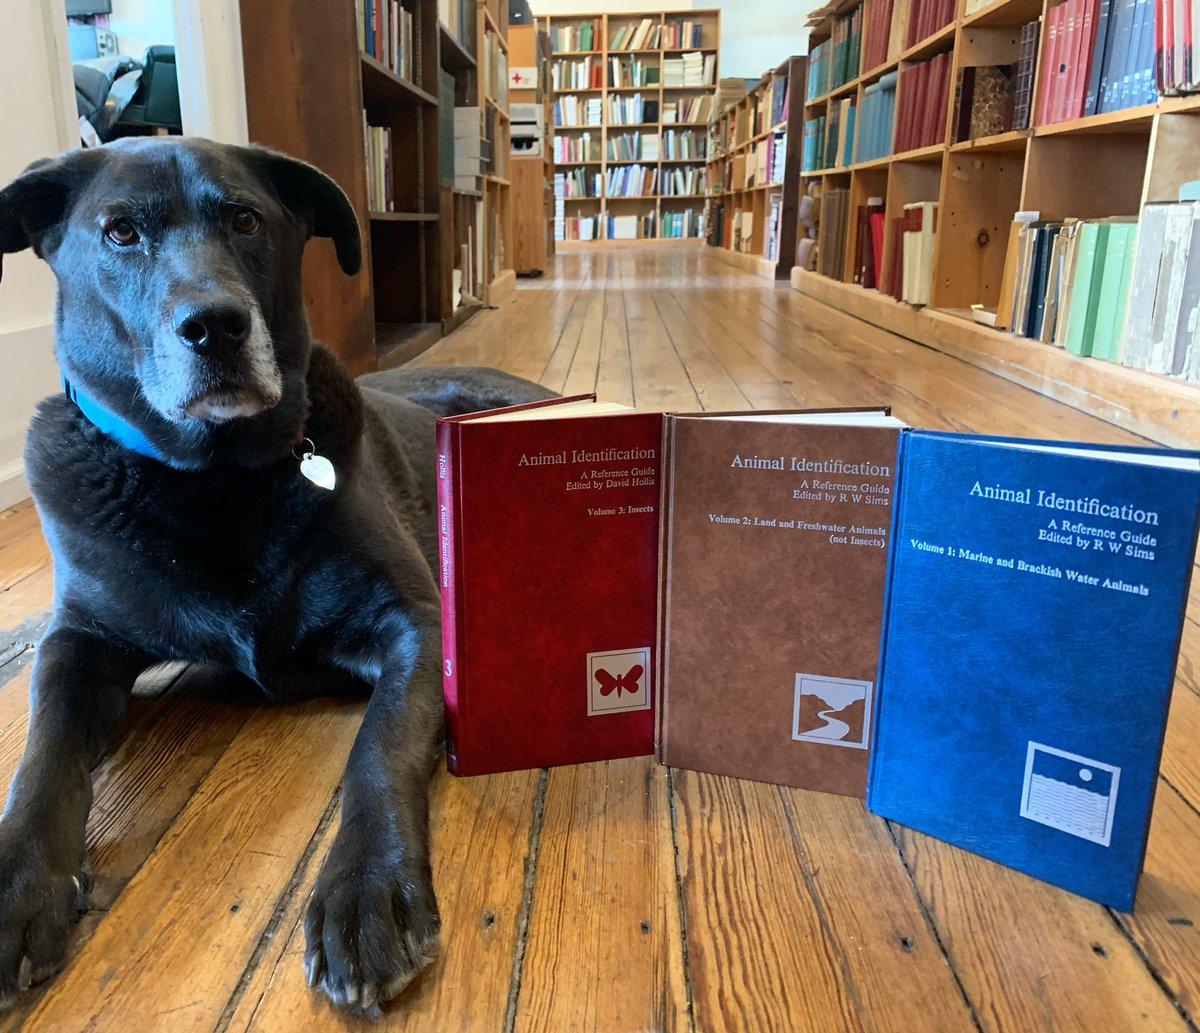 "It's #WoofWednesday and #WorldWildlifeDay! Charlie's posing next to ""Animal Identification, A Reference Guide"" from the British Museum, 1980    #oakknollbooks #oakknollpress #booksaboutbooks #dogsandbooks #dogs #books #animals #insects #wildlife"